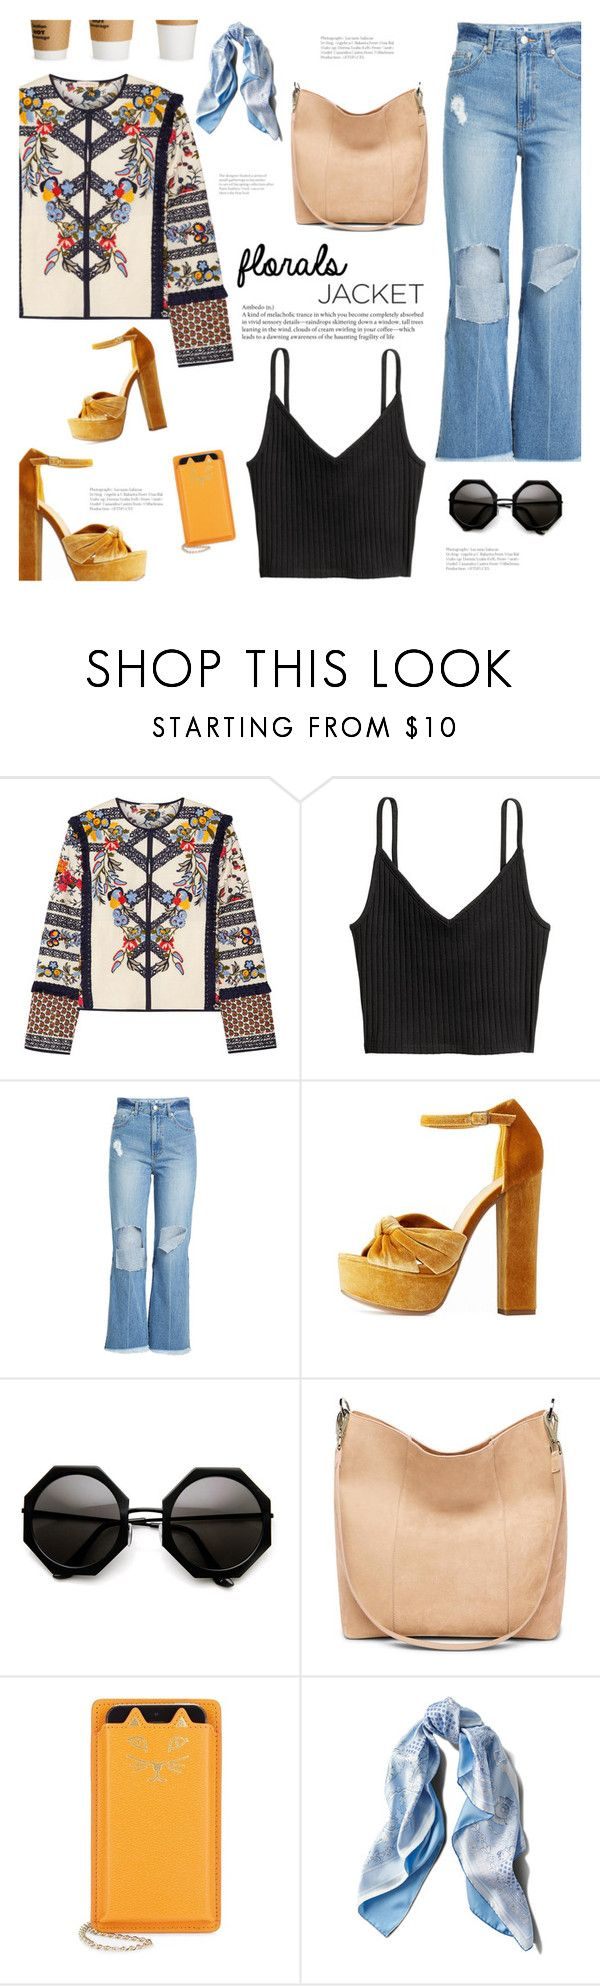 """""""Chaqueta Floreada"""" by makeupgoddess ❤ liked on Polyvore featuring Tory Burch, SJYP, Charlotte Russe, Charlotte Olympia and Asprey"""